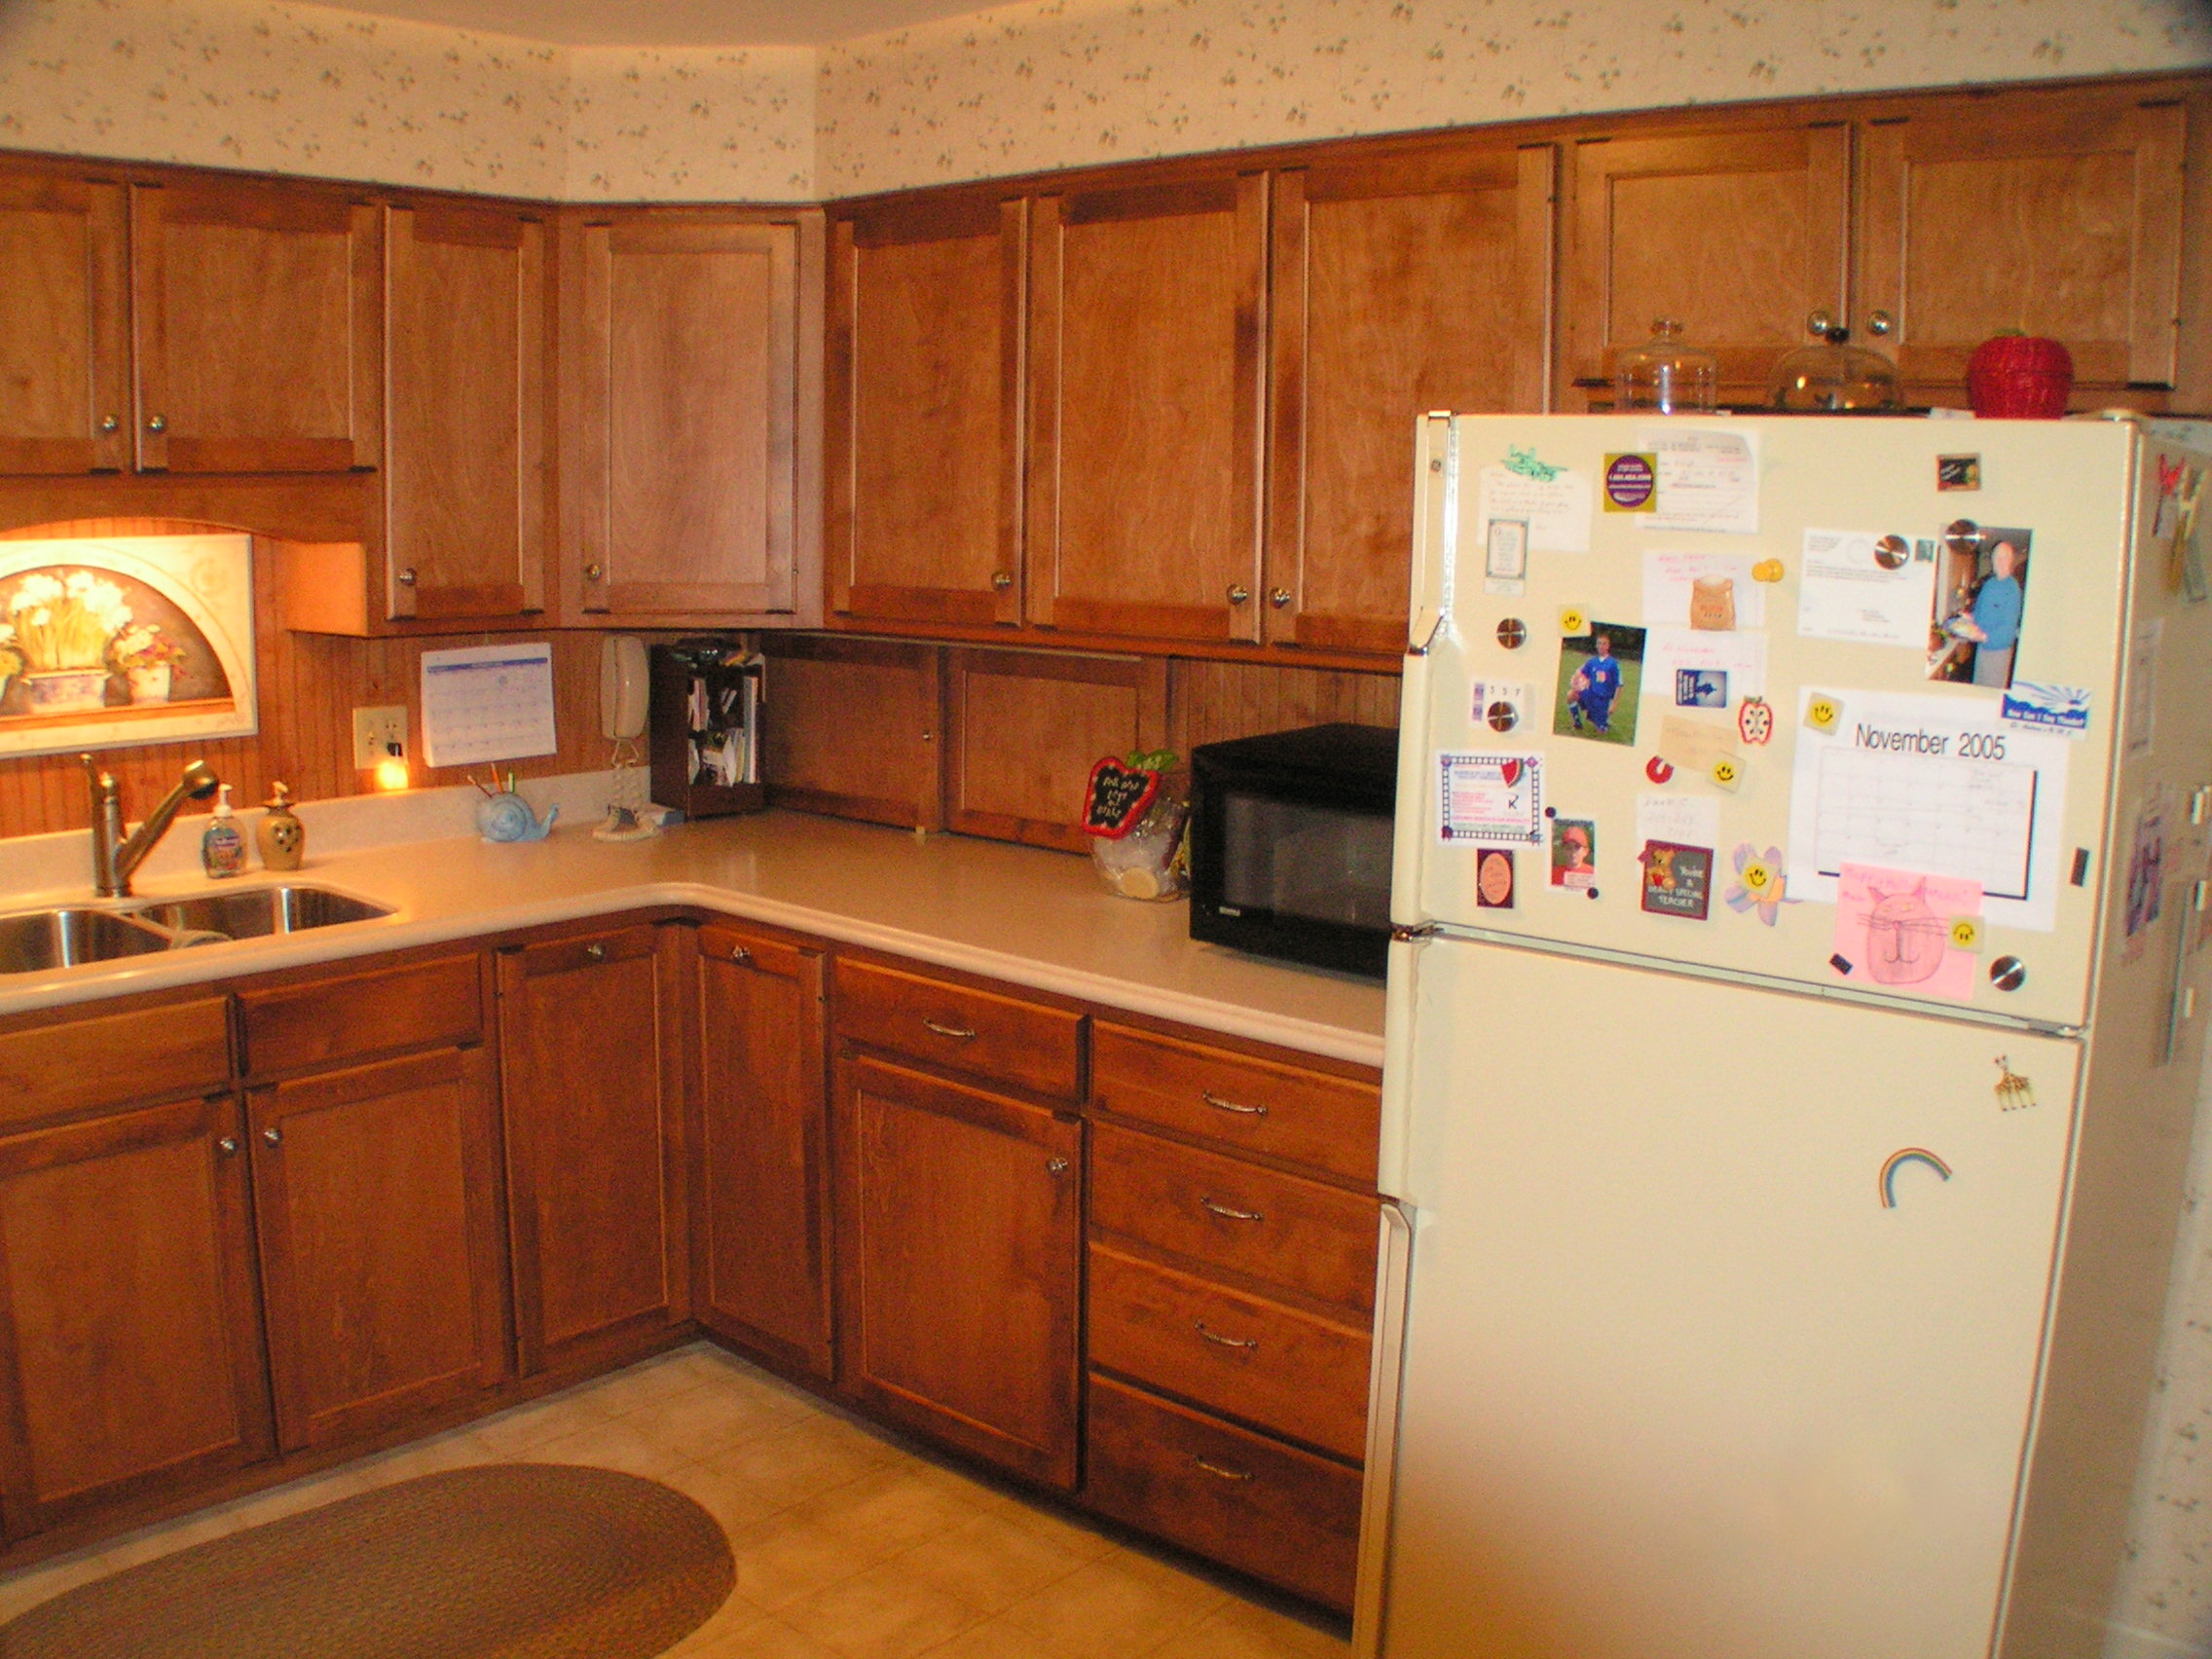 Terrific kitchen cabinet refinishing cost pictures design Refacing bathroom cabinets cost